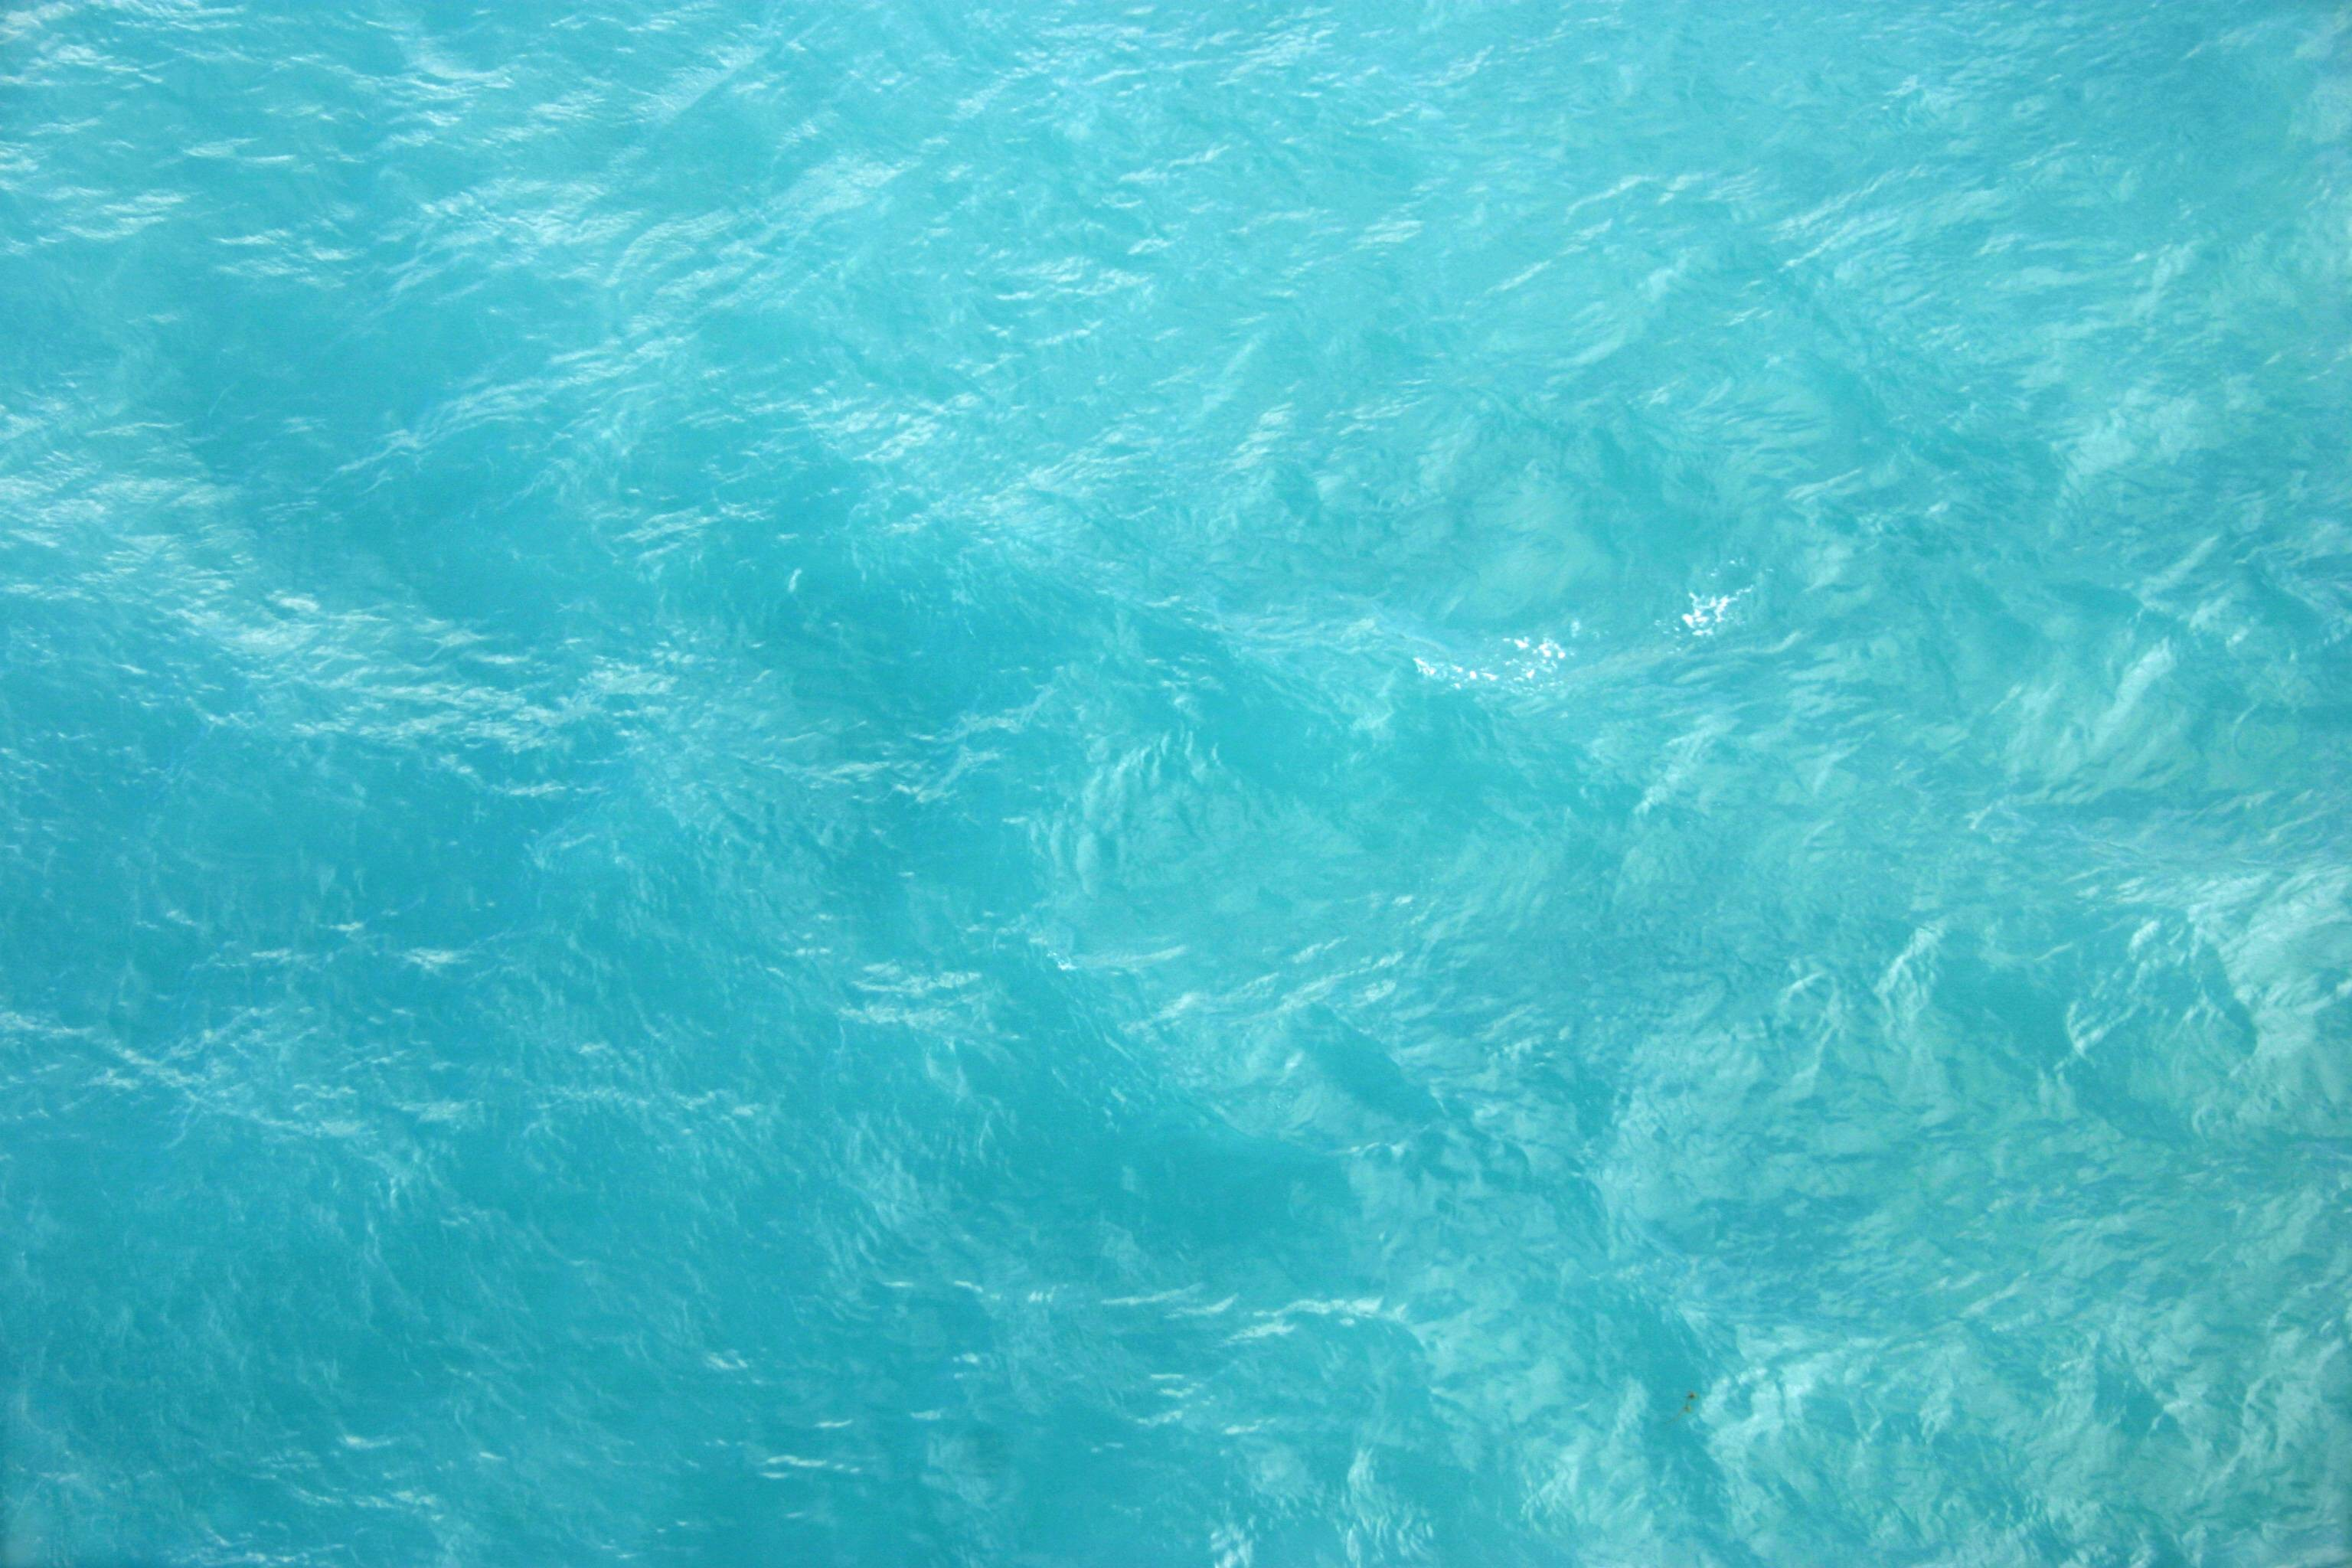 Water Background Tumblr ·①